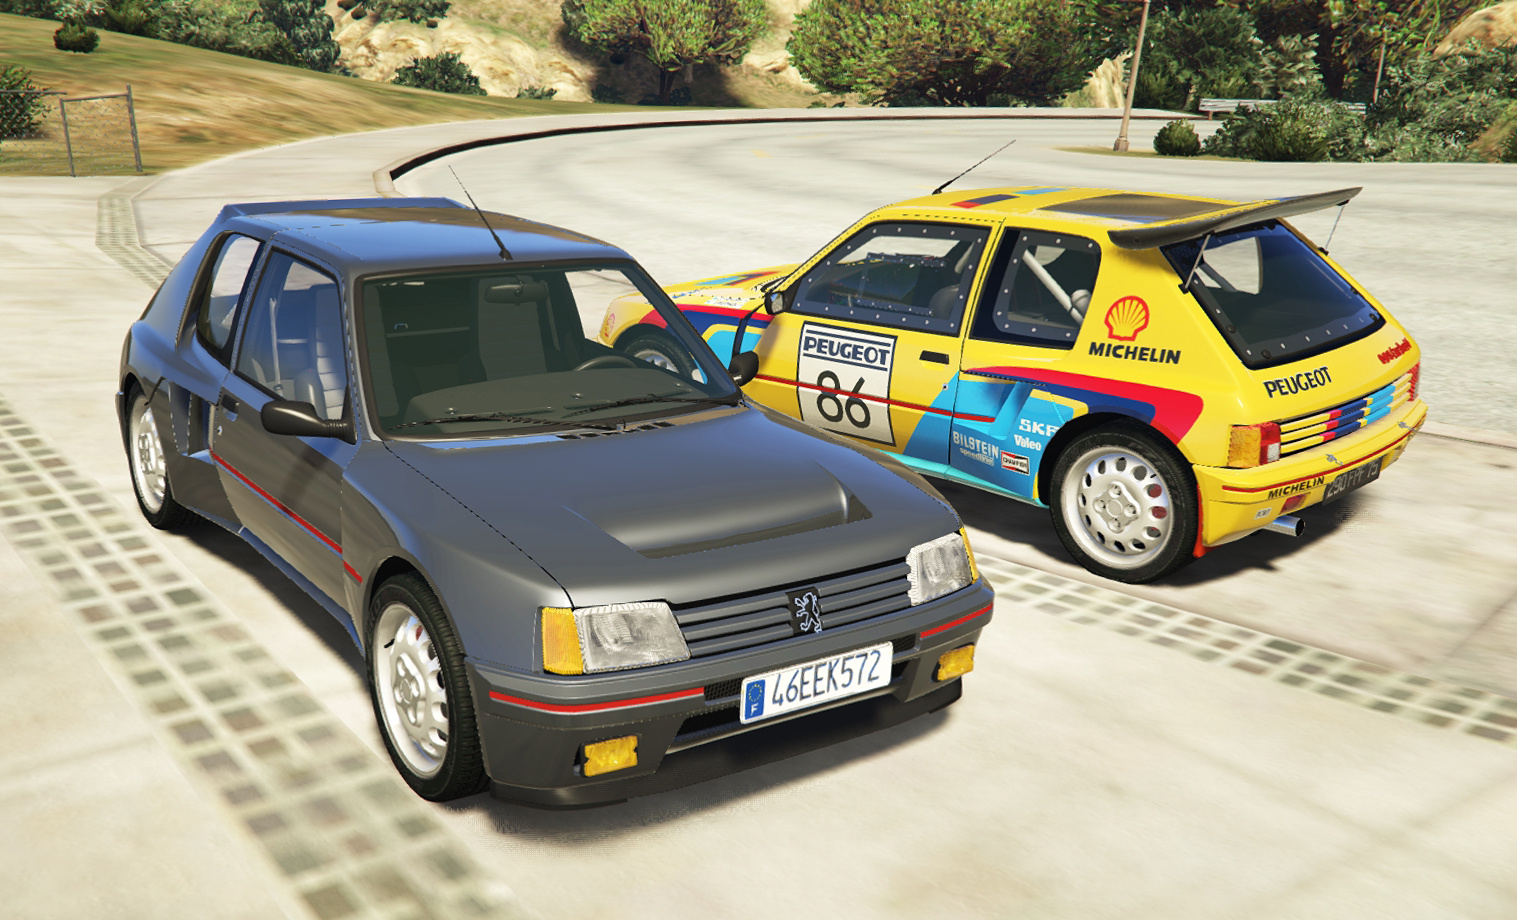 peugeot 205 turbo 16 2 cars pack add on tuning livery gta5. Black Bedroom Furniture Sets. Home Design Ideas